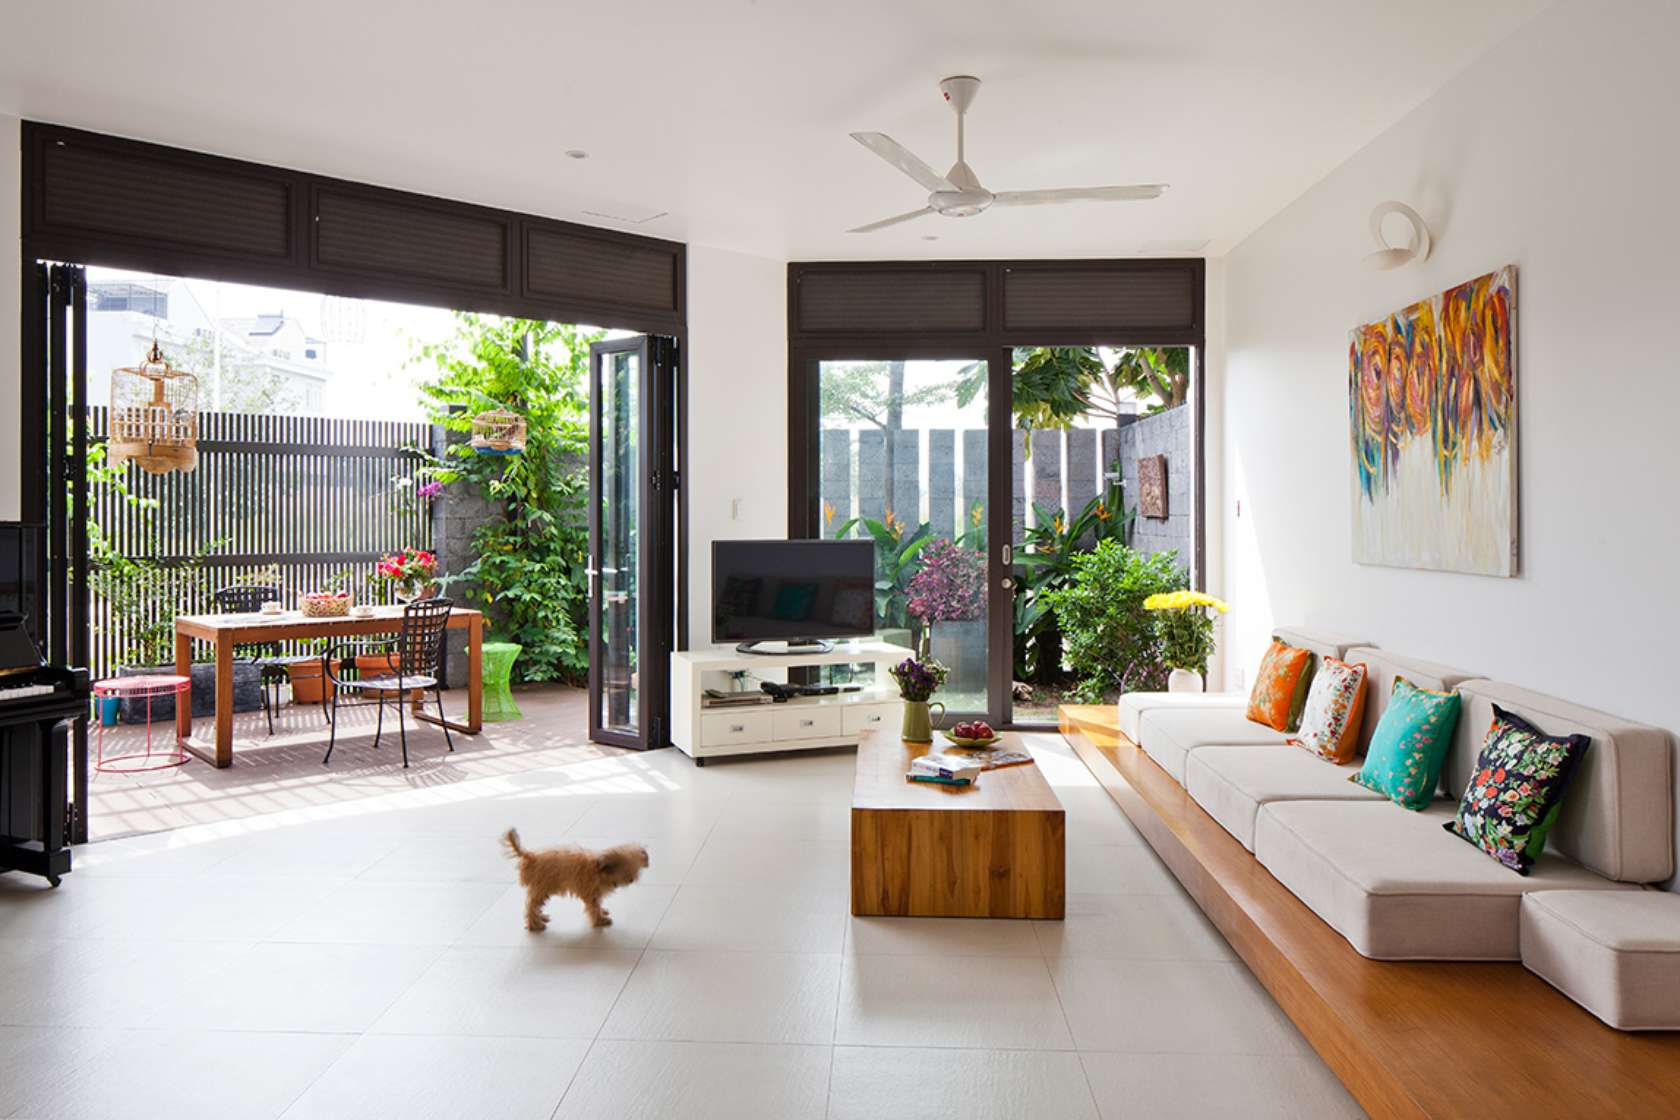 Newspaper of the West praised the words of 3-storey townhouse with beautiful garden in Saigon - Beautiful House No. (6)